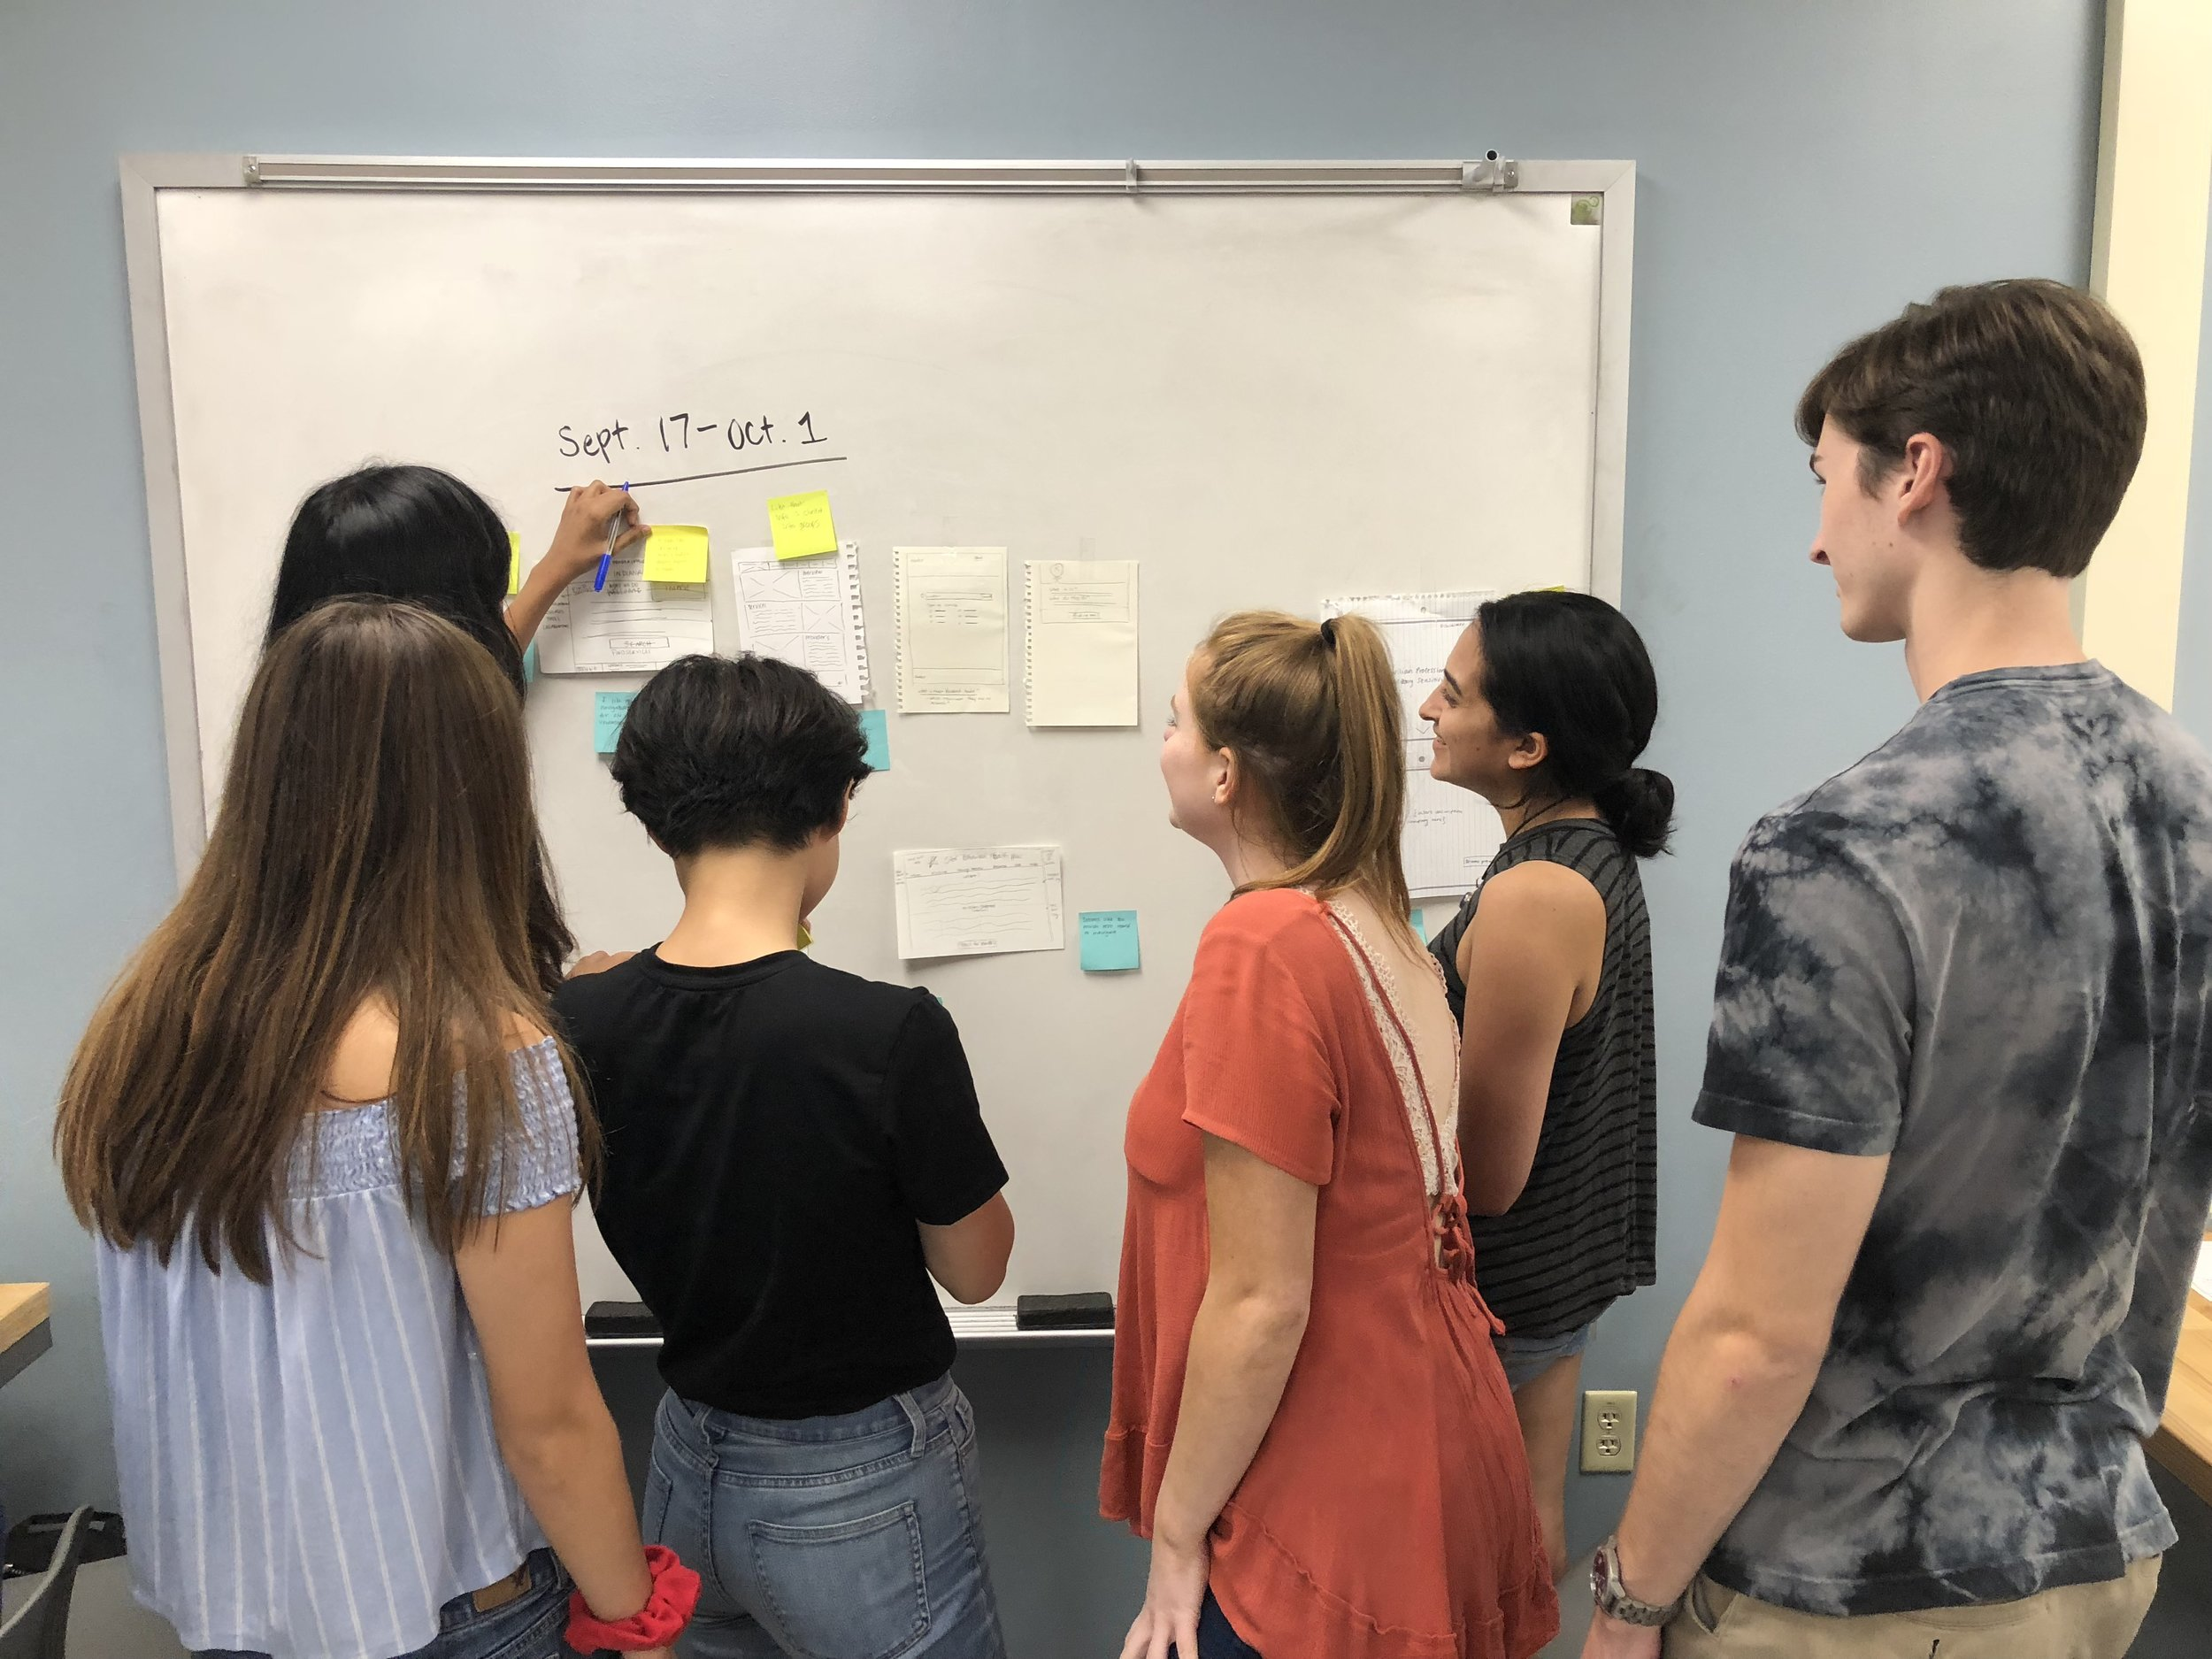 Most recently I led a team of UX students in one of my studios. My role was to guide the direction of the project as well as help my teammates grow individually as designers. Check out our project  here .